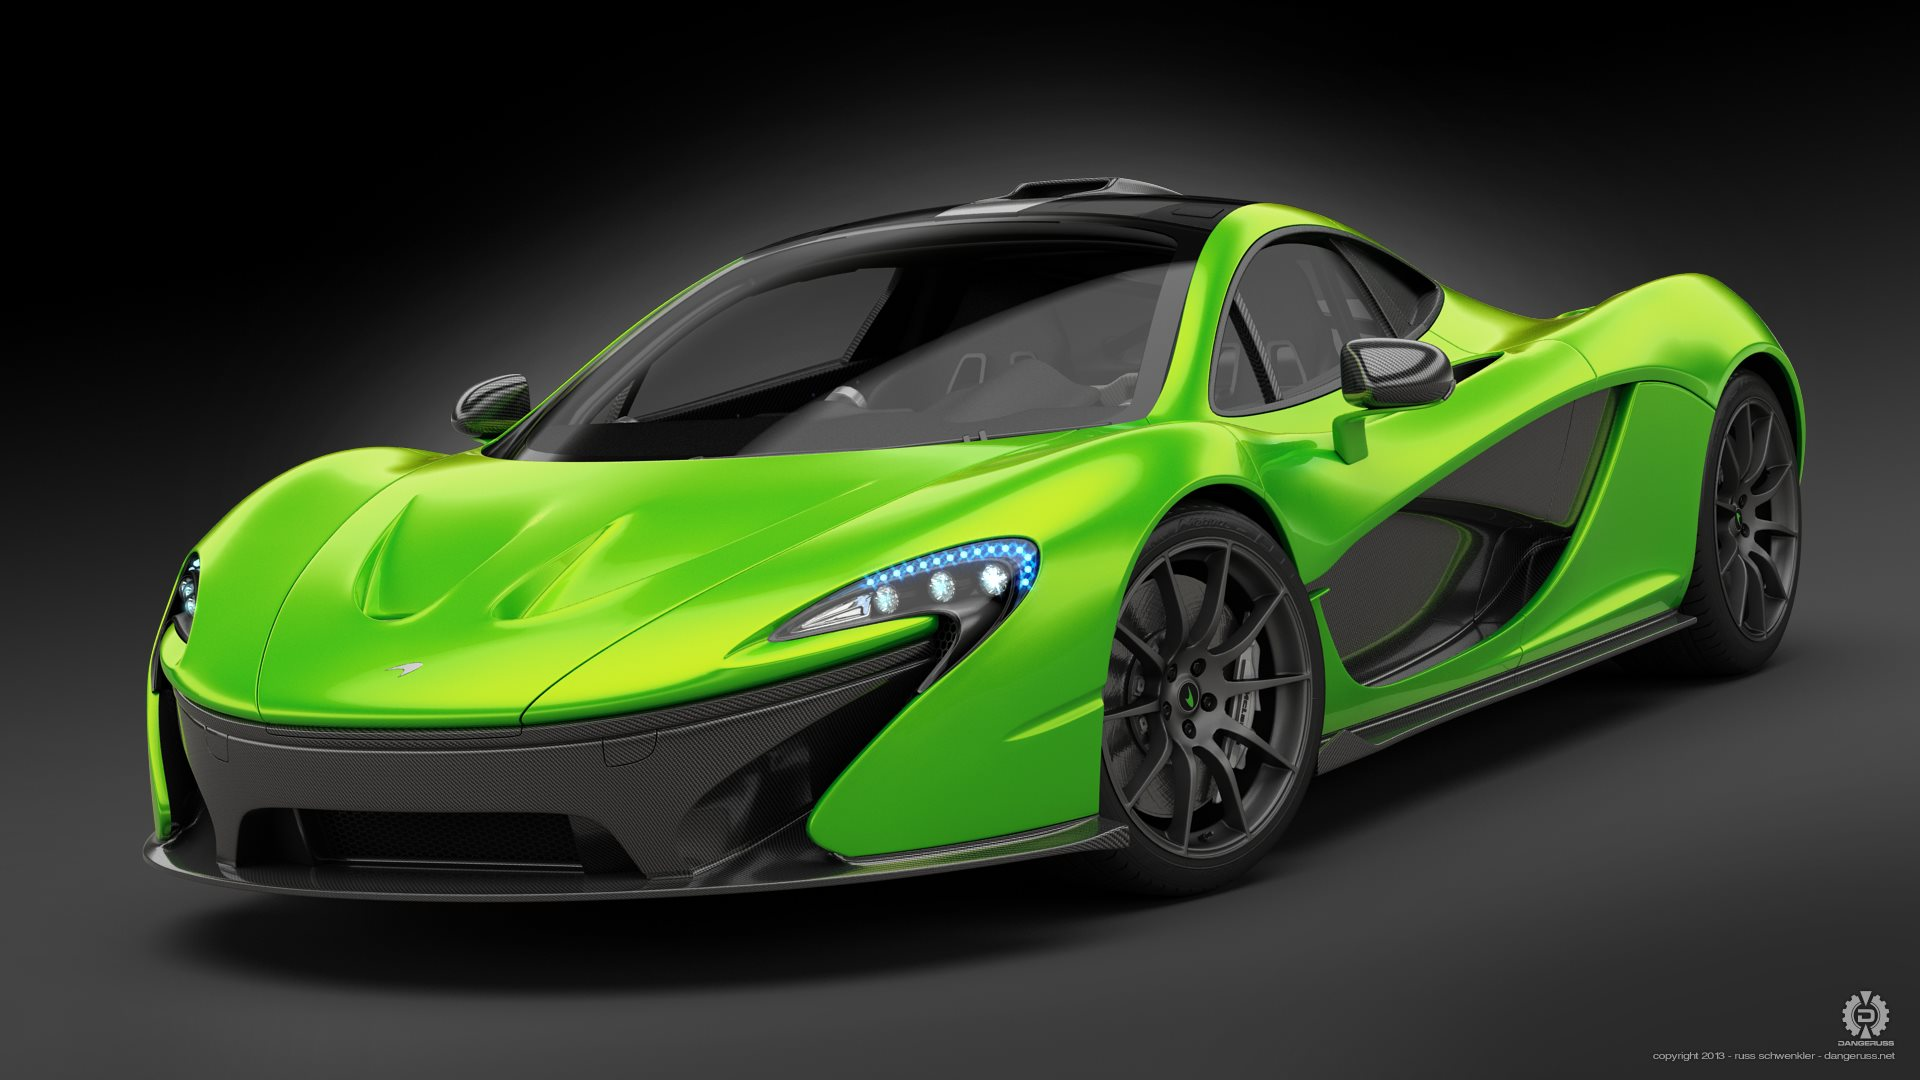 Racing Car Full HD Wallpaper And Background Image